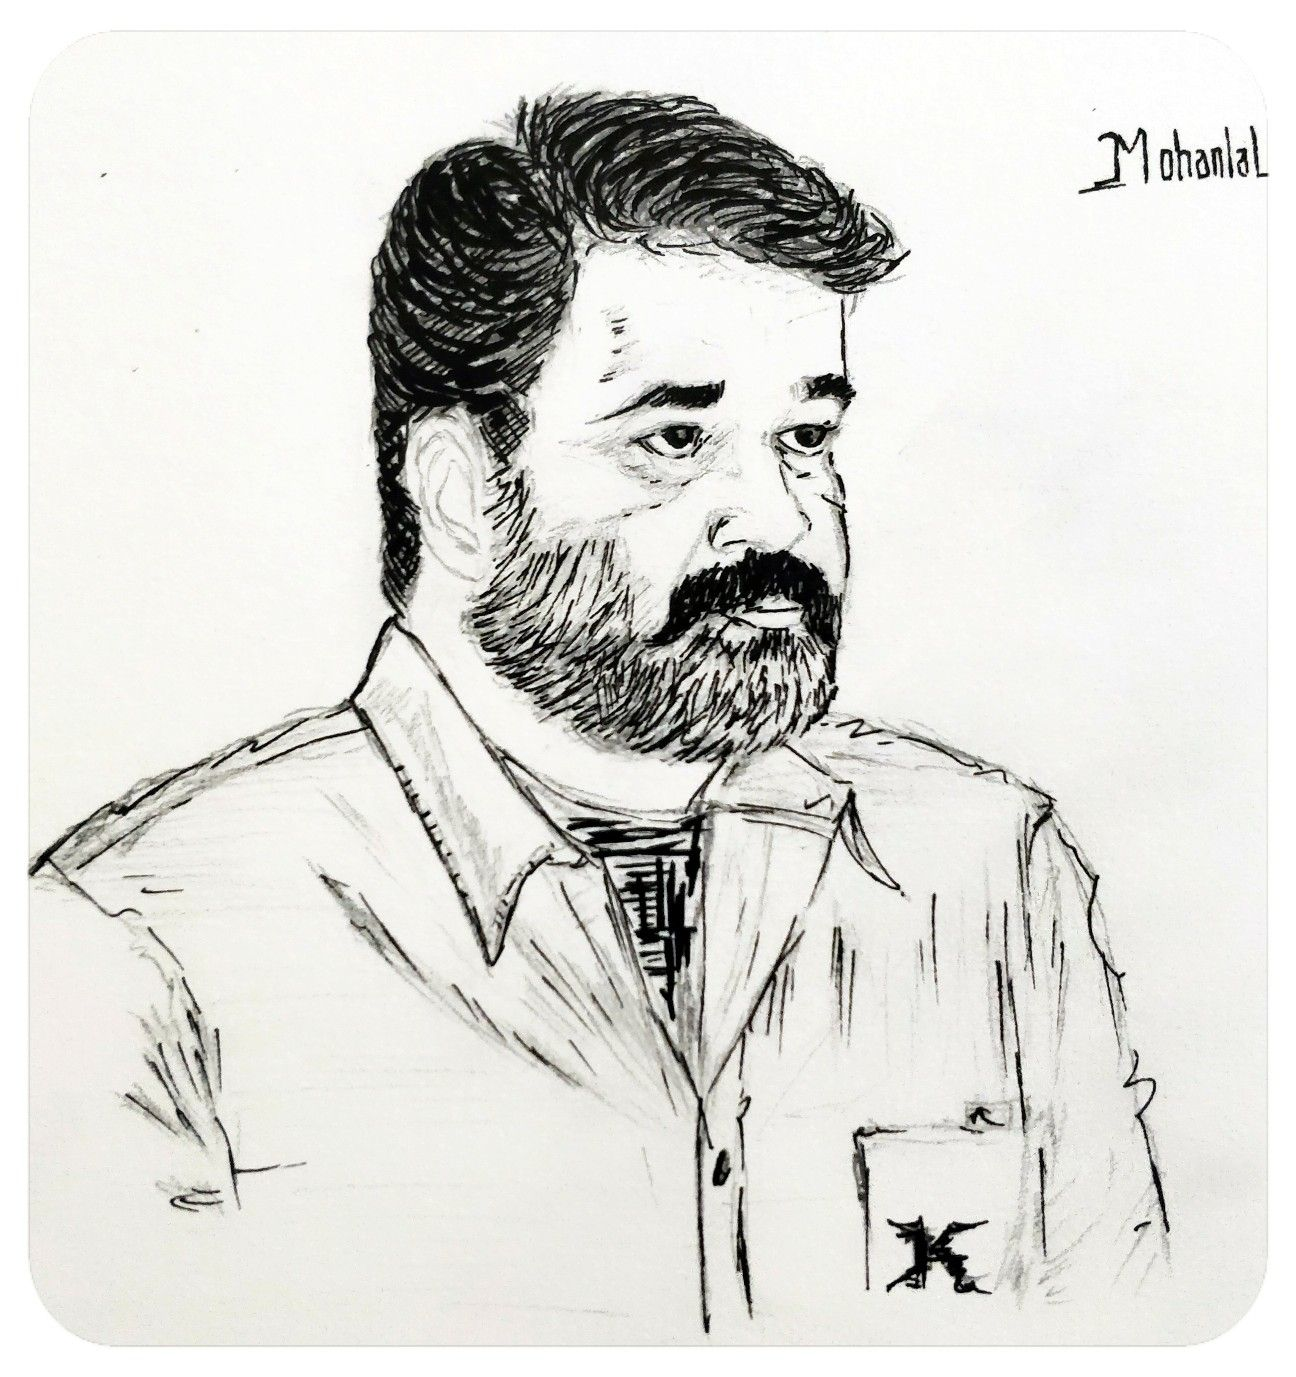 Mohanlal drawing pencil sketch